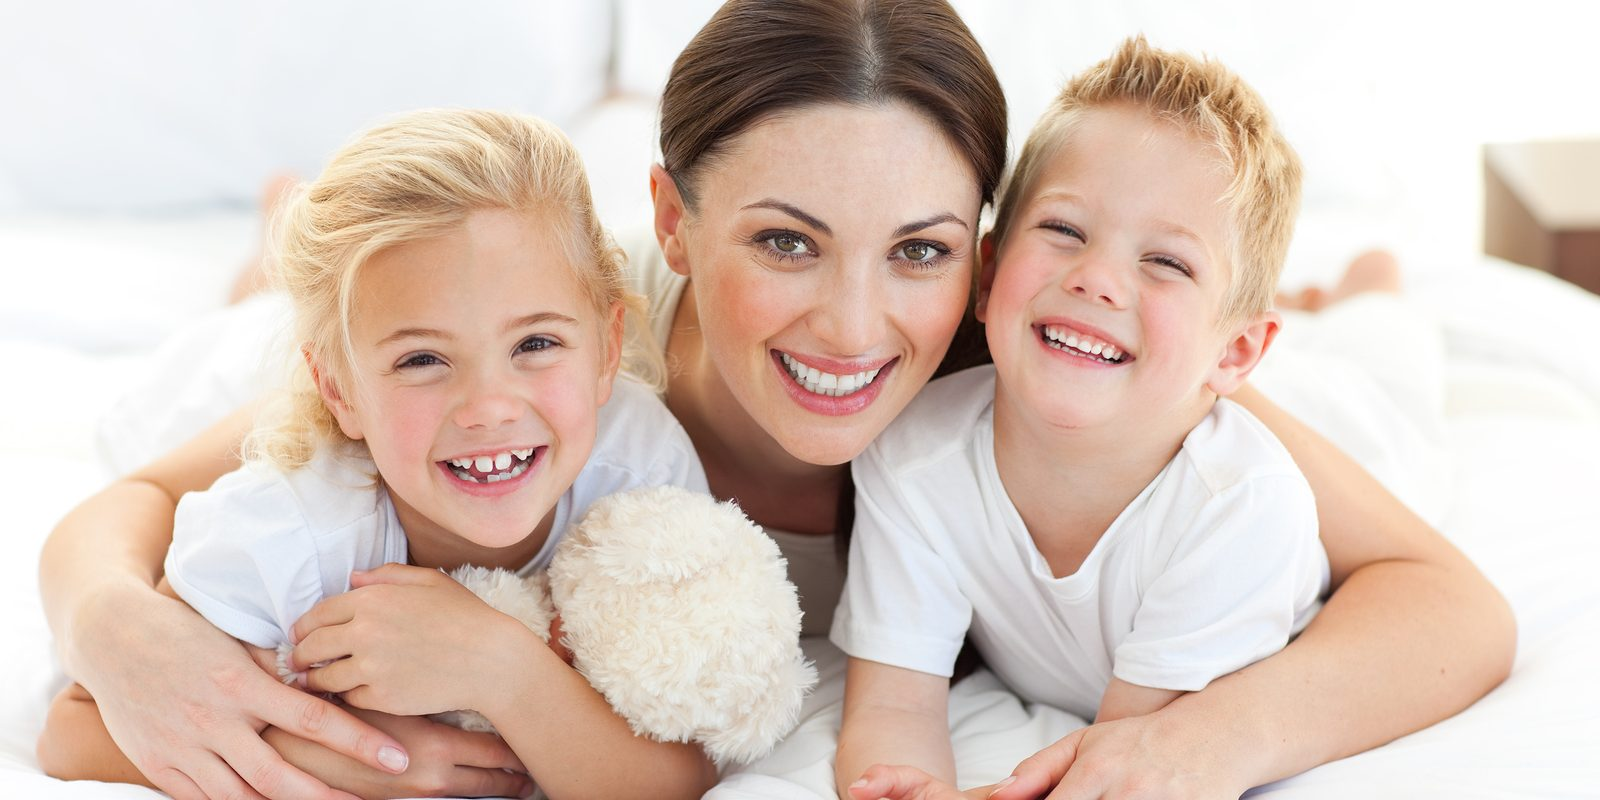 New Trend Has Mothers Expressing Regret For Having Children The